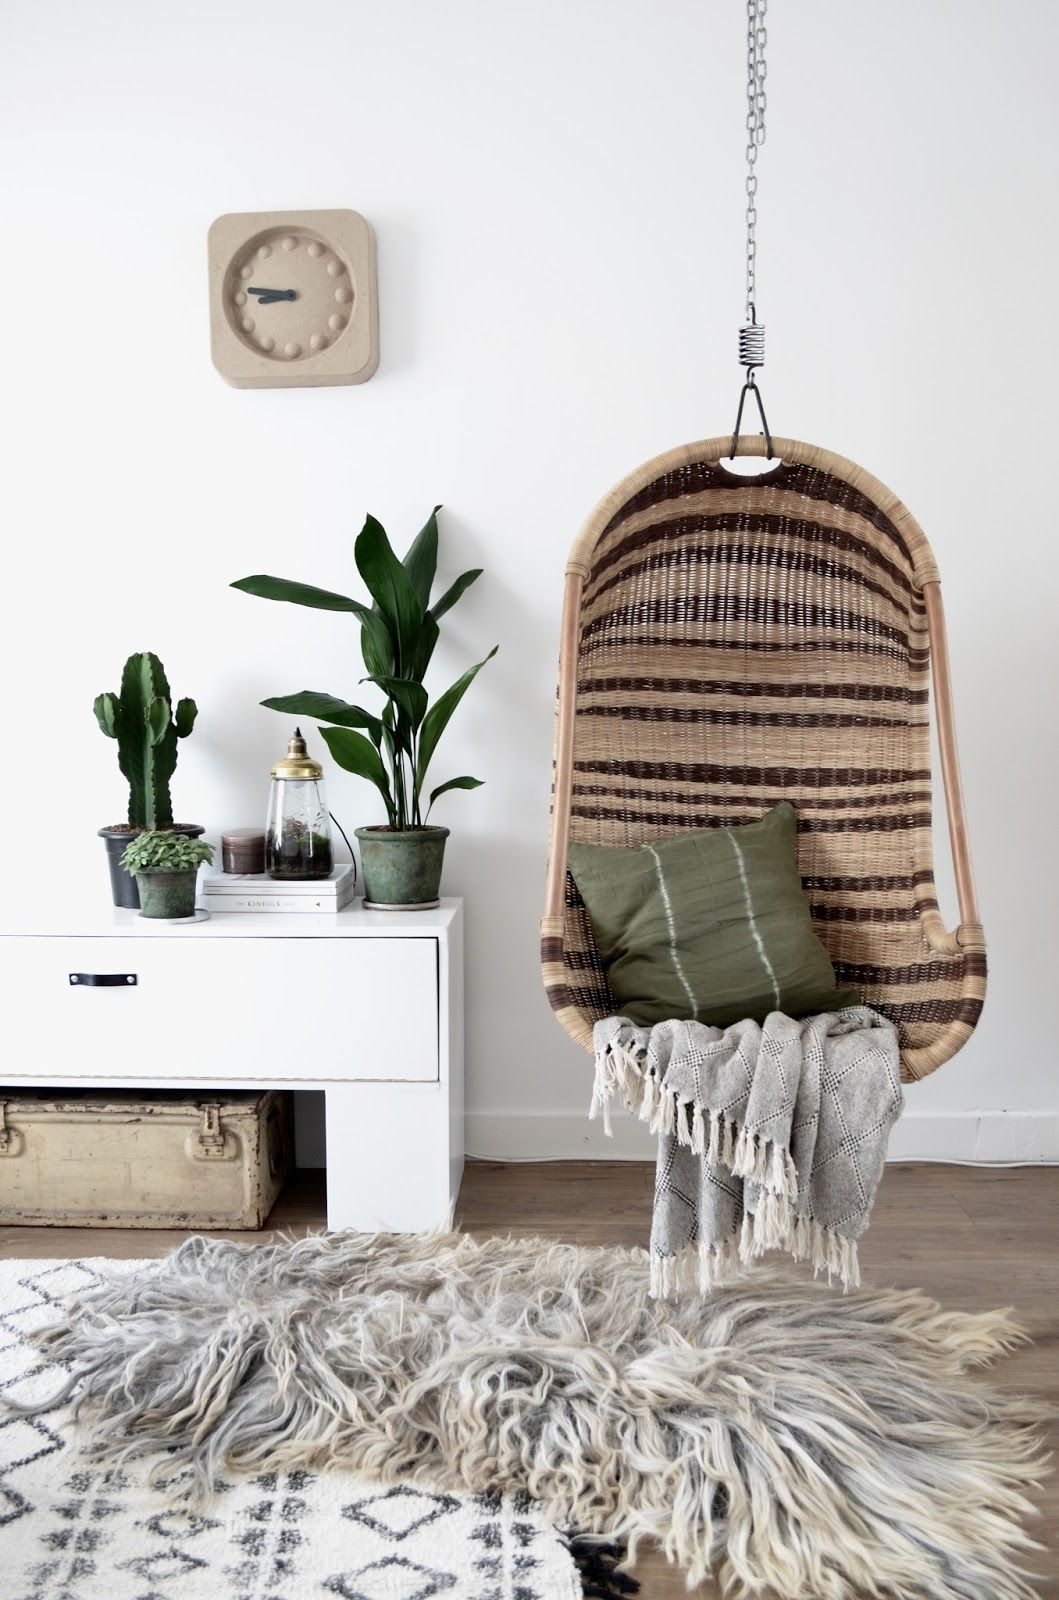 Hanging rattan chair, living room, simple minimalist